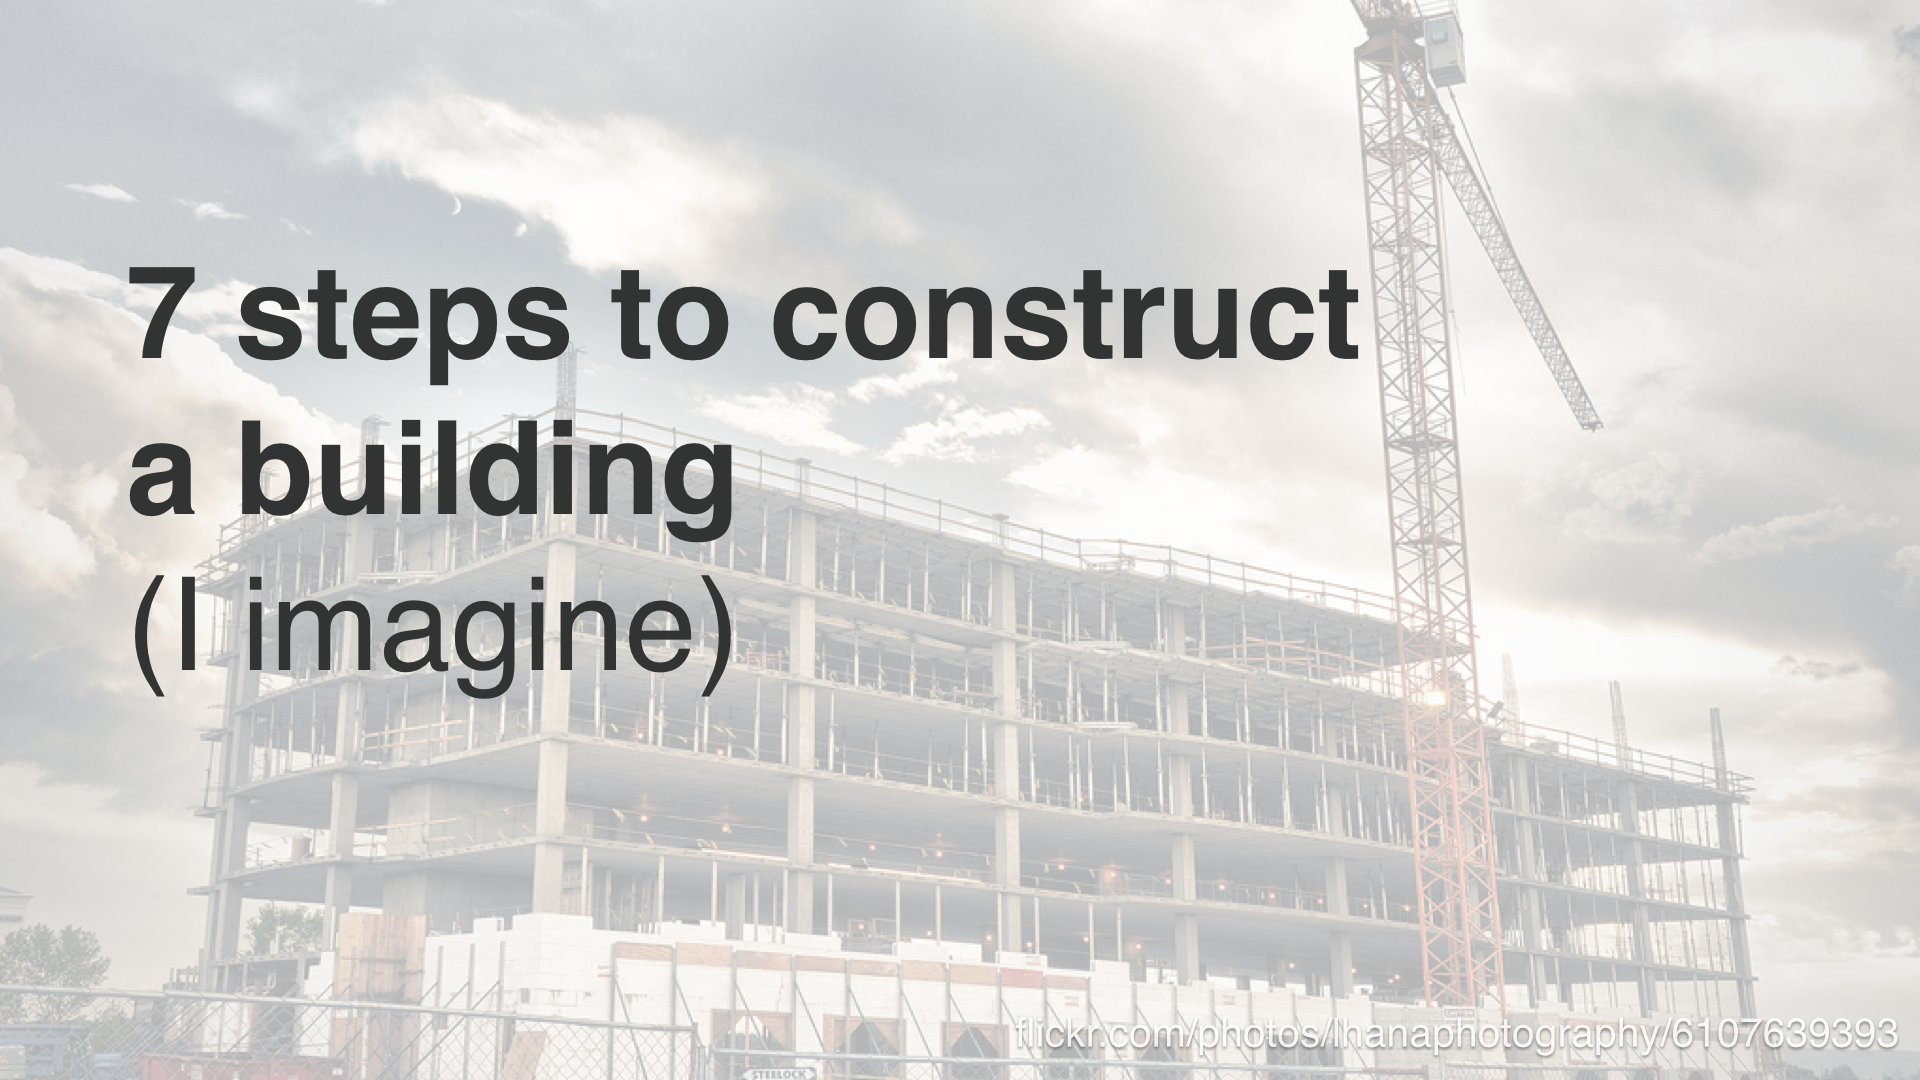 """7 steps to construct a building - I imagine"""